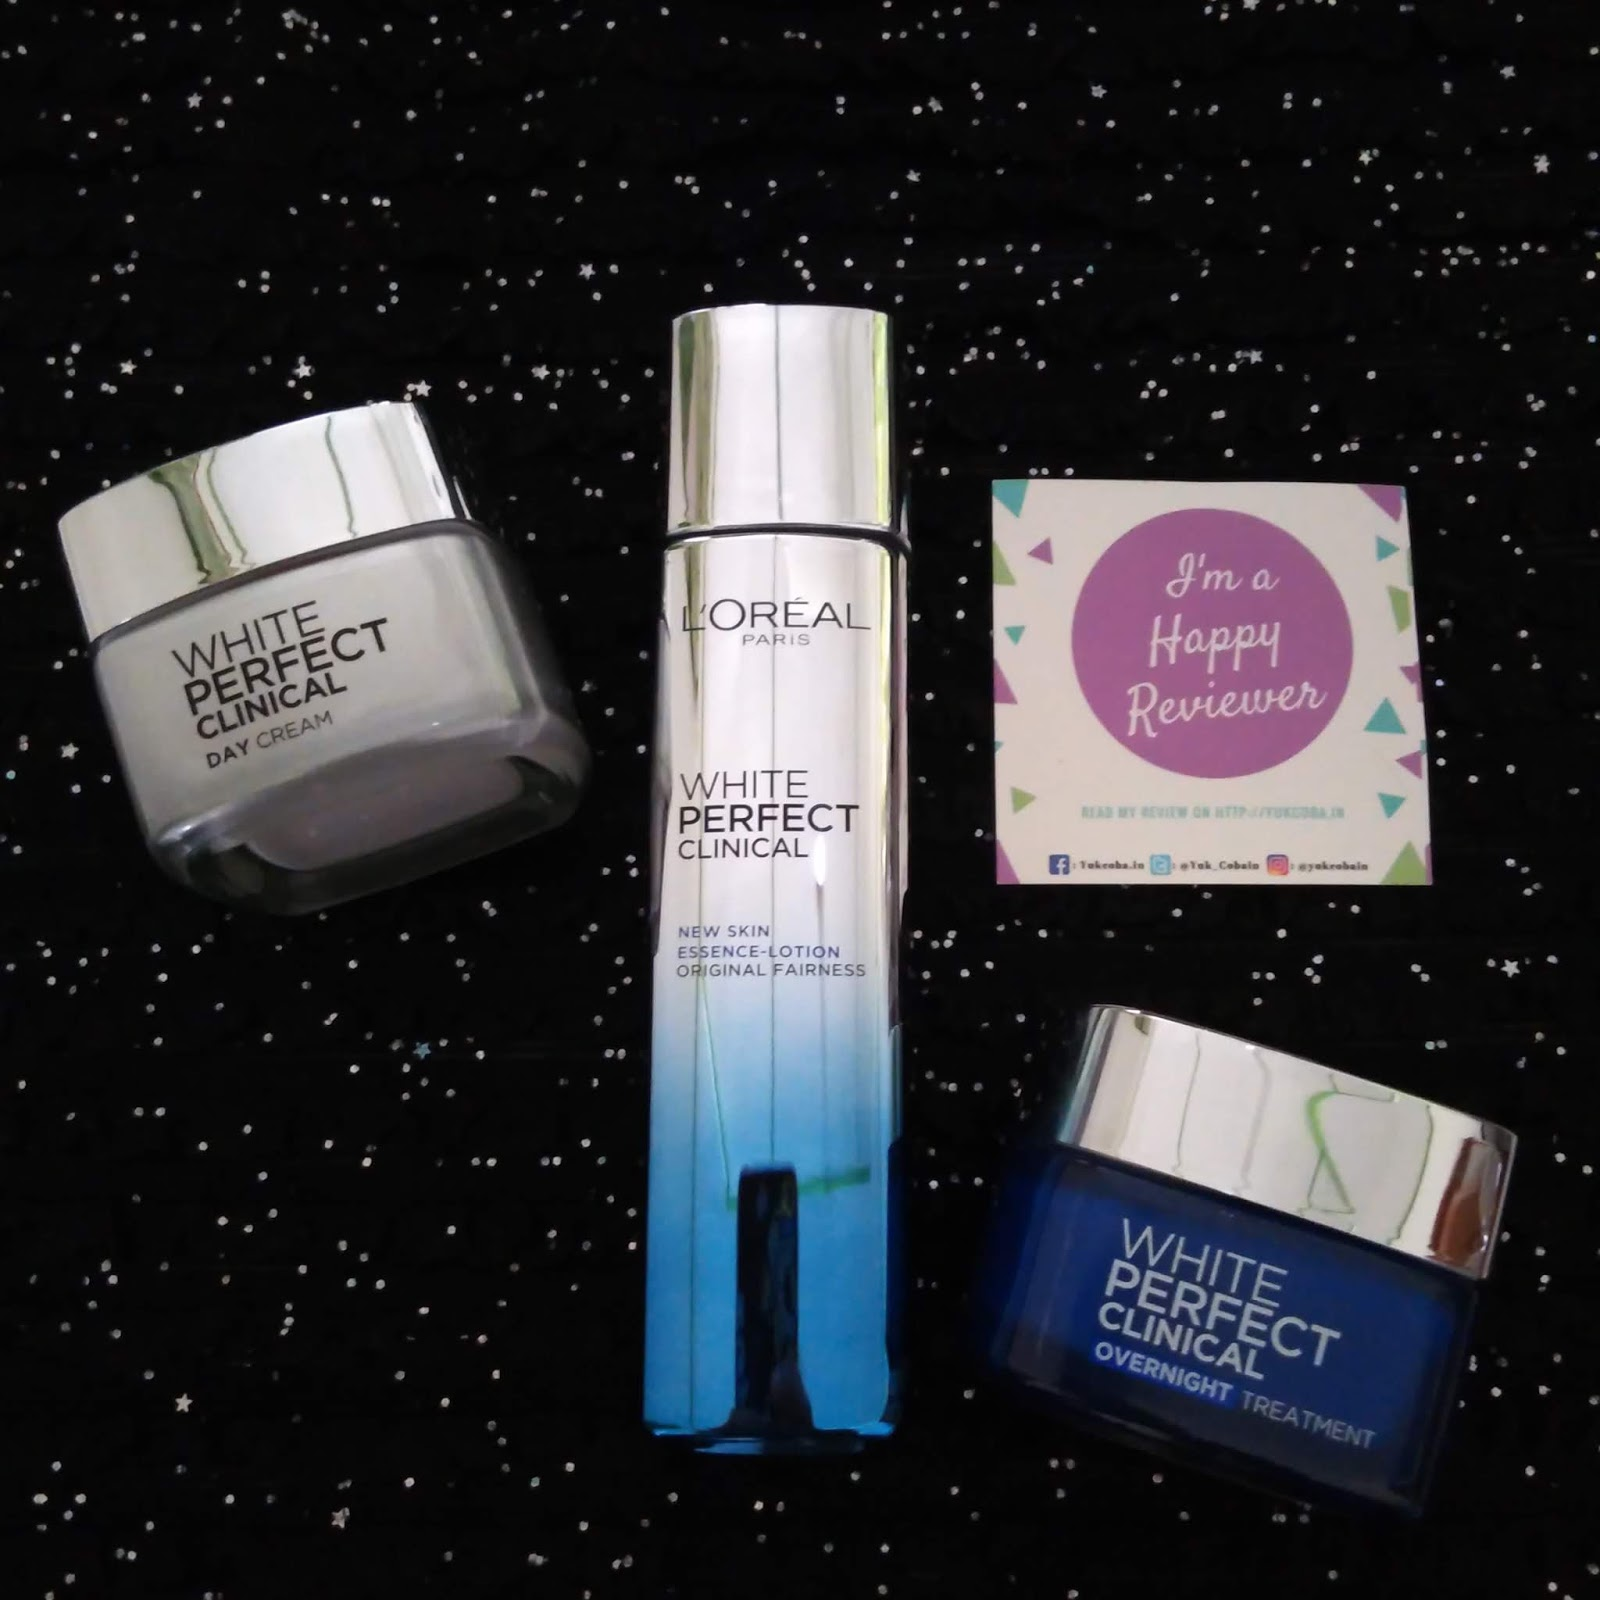 Quick Review Loreal Paris White Perfect Clinical Coolmoshpeer Face2face Moisturizer Day Cream